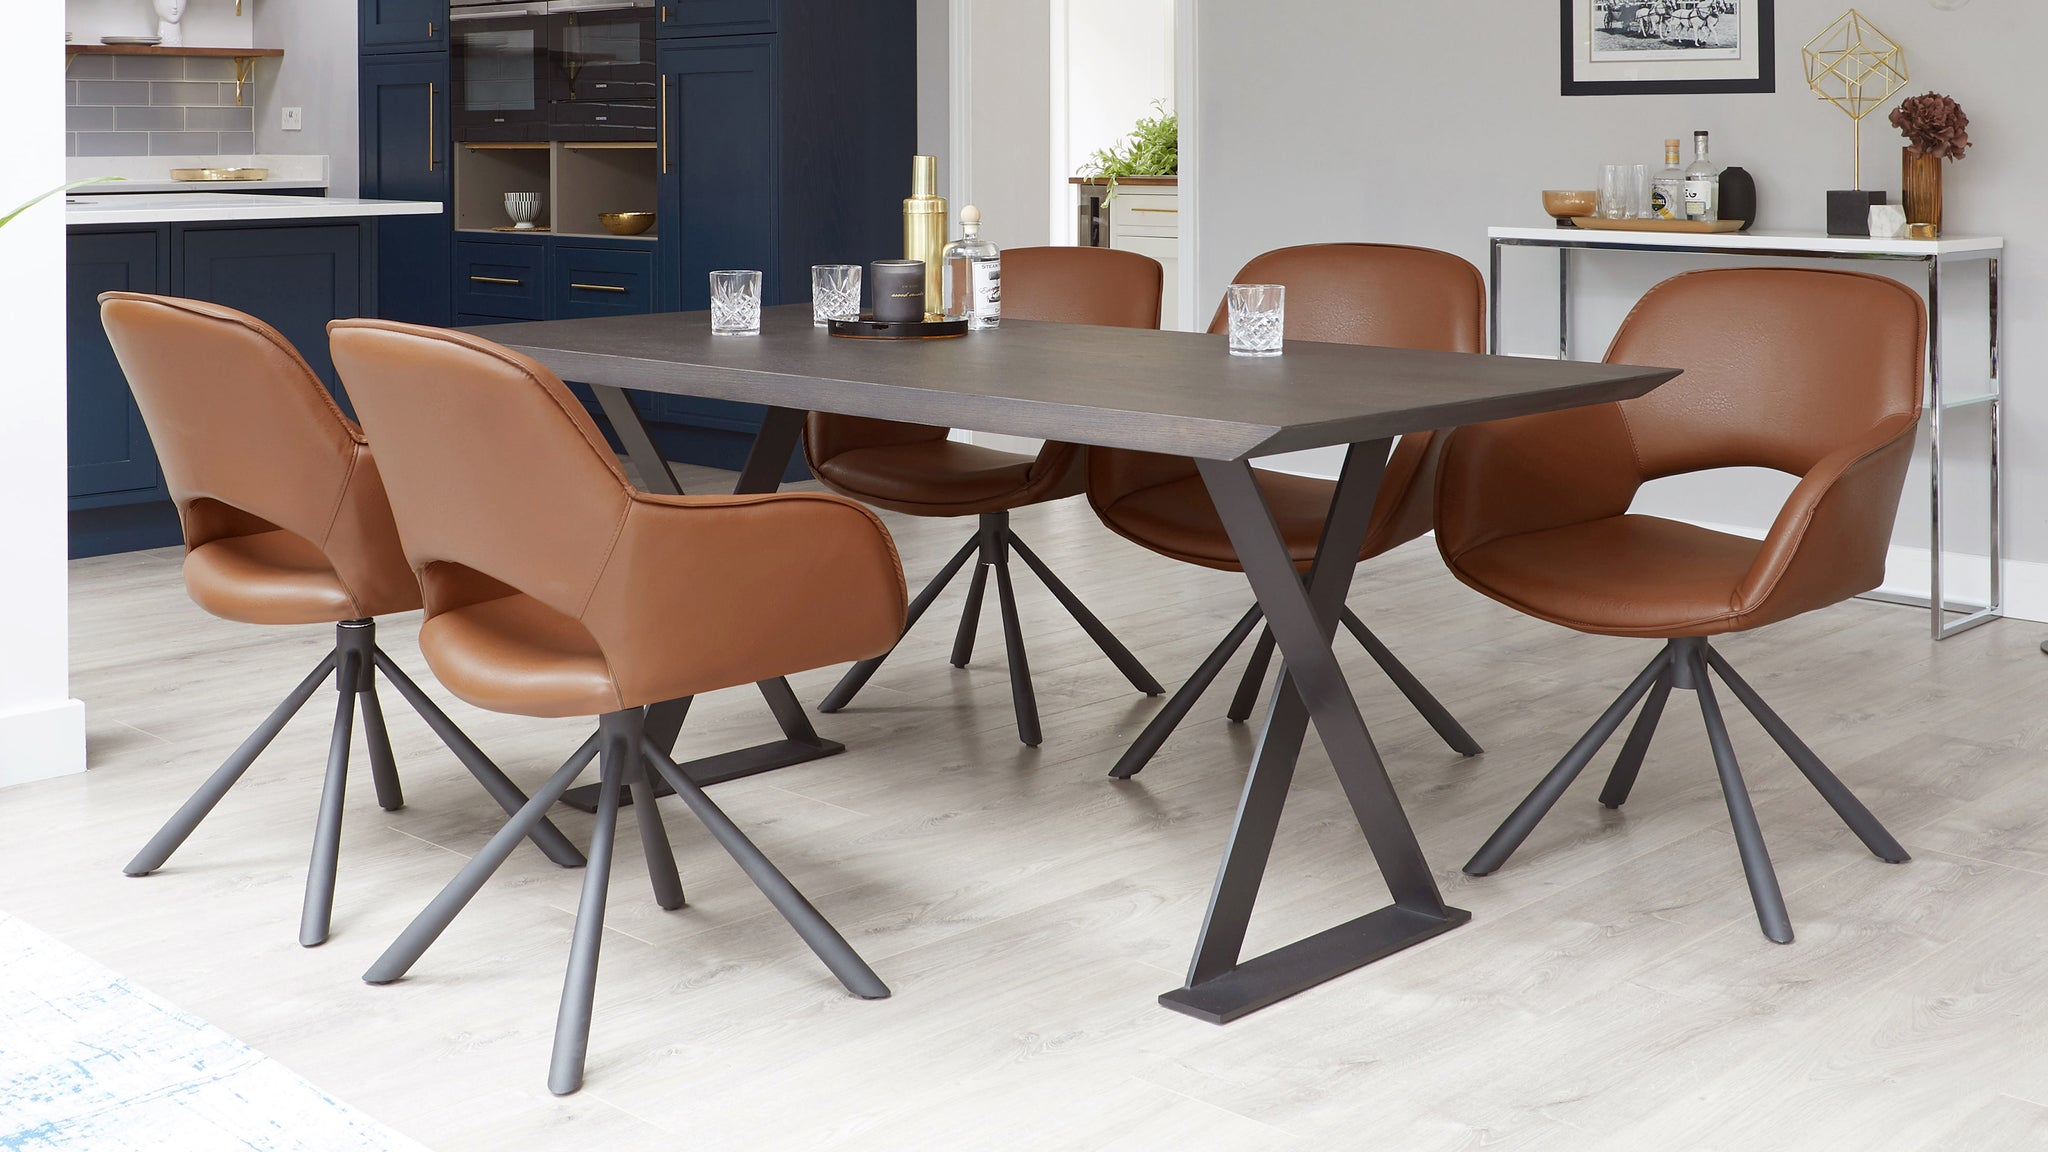 Nala Dark Oak And Marlow Faux Leather Dining Set